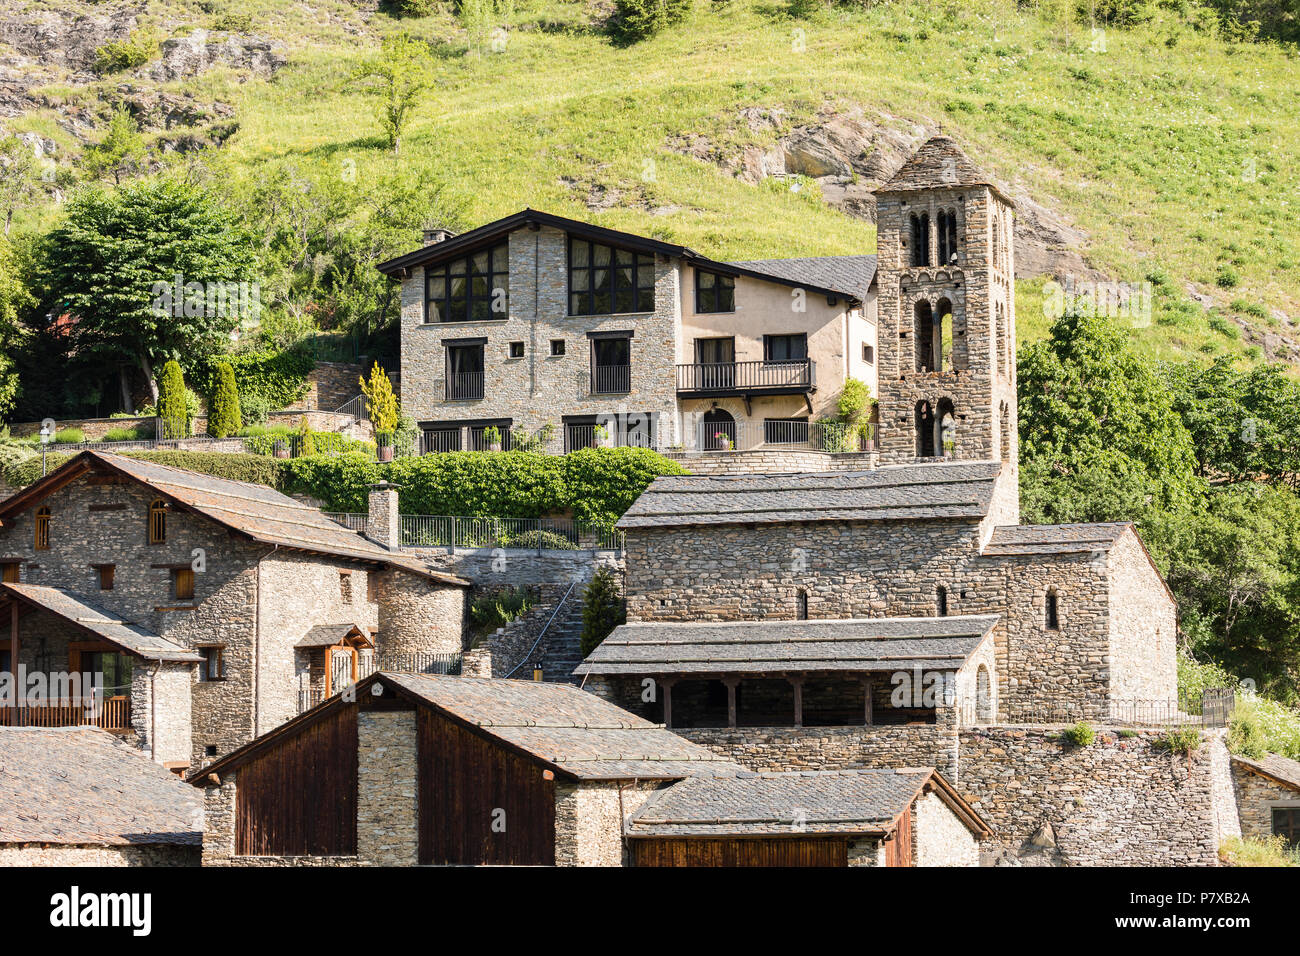 Village Pal in the Pyrenees in Andorra with the romanesque church - Stock Image